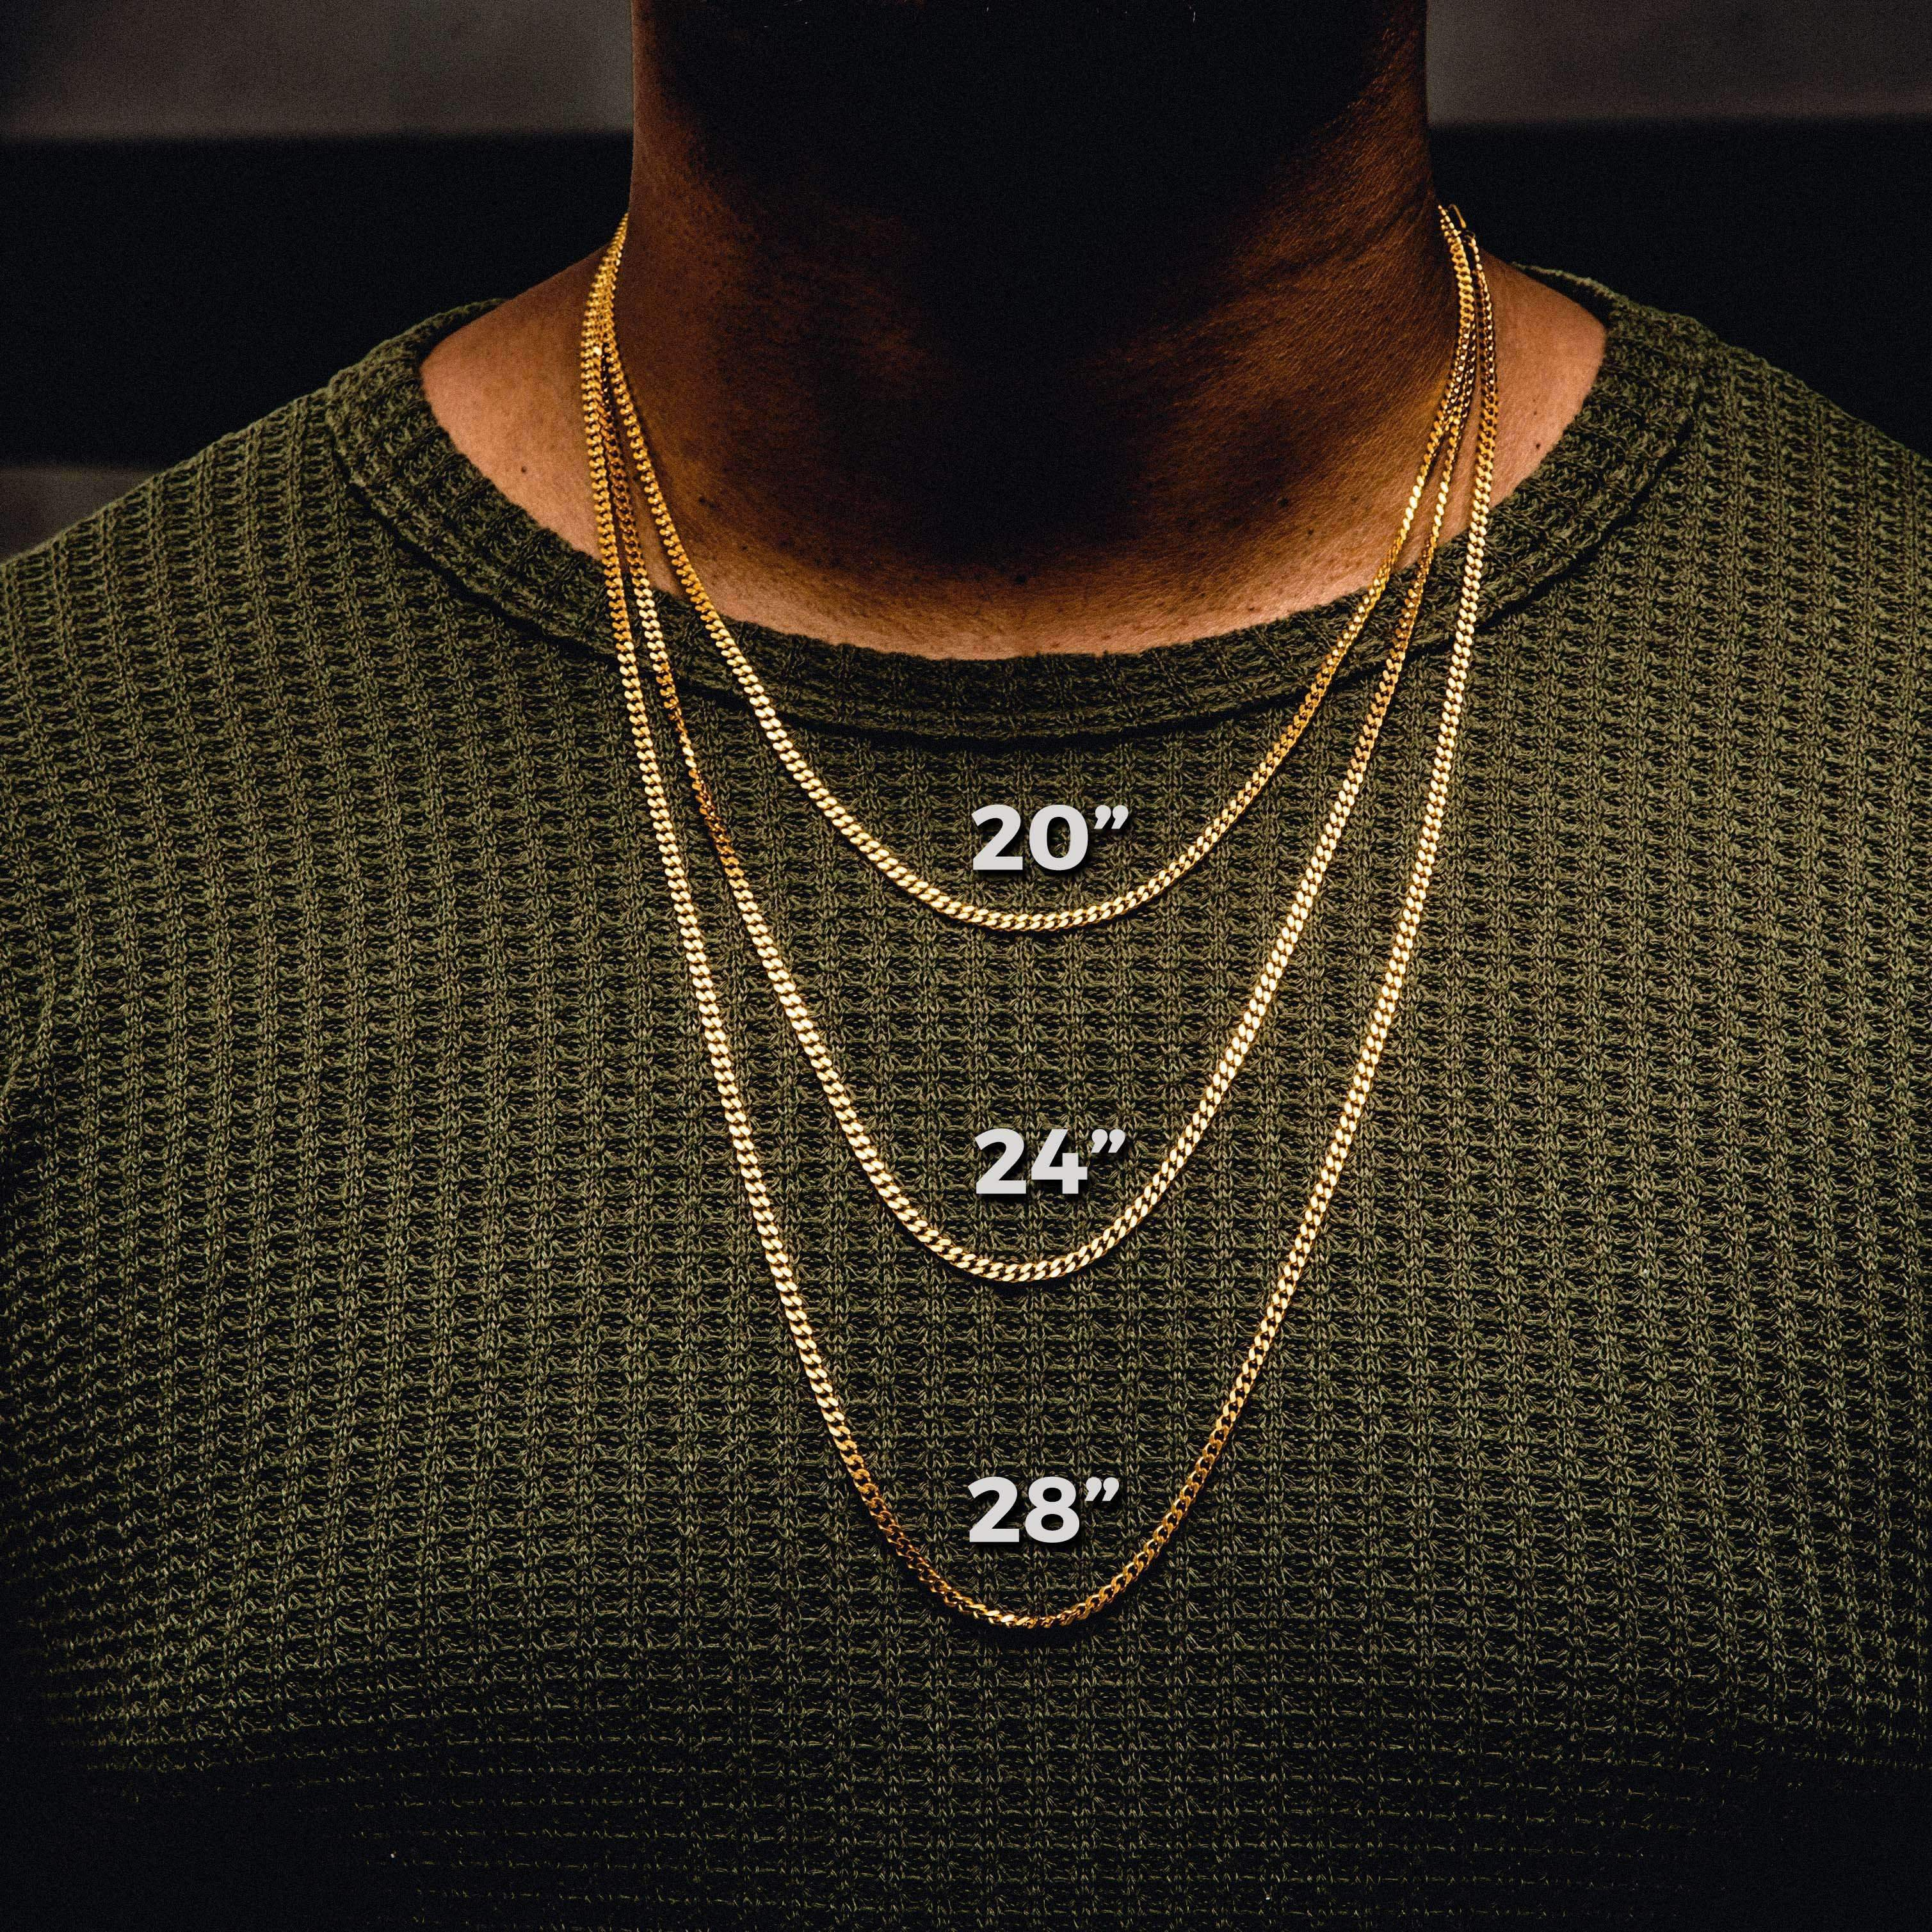 Men Necklace Length Guide: How To Measure & Choose The Right Necklace Chain Length